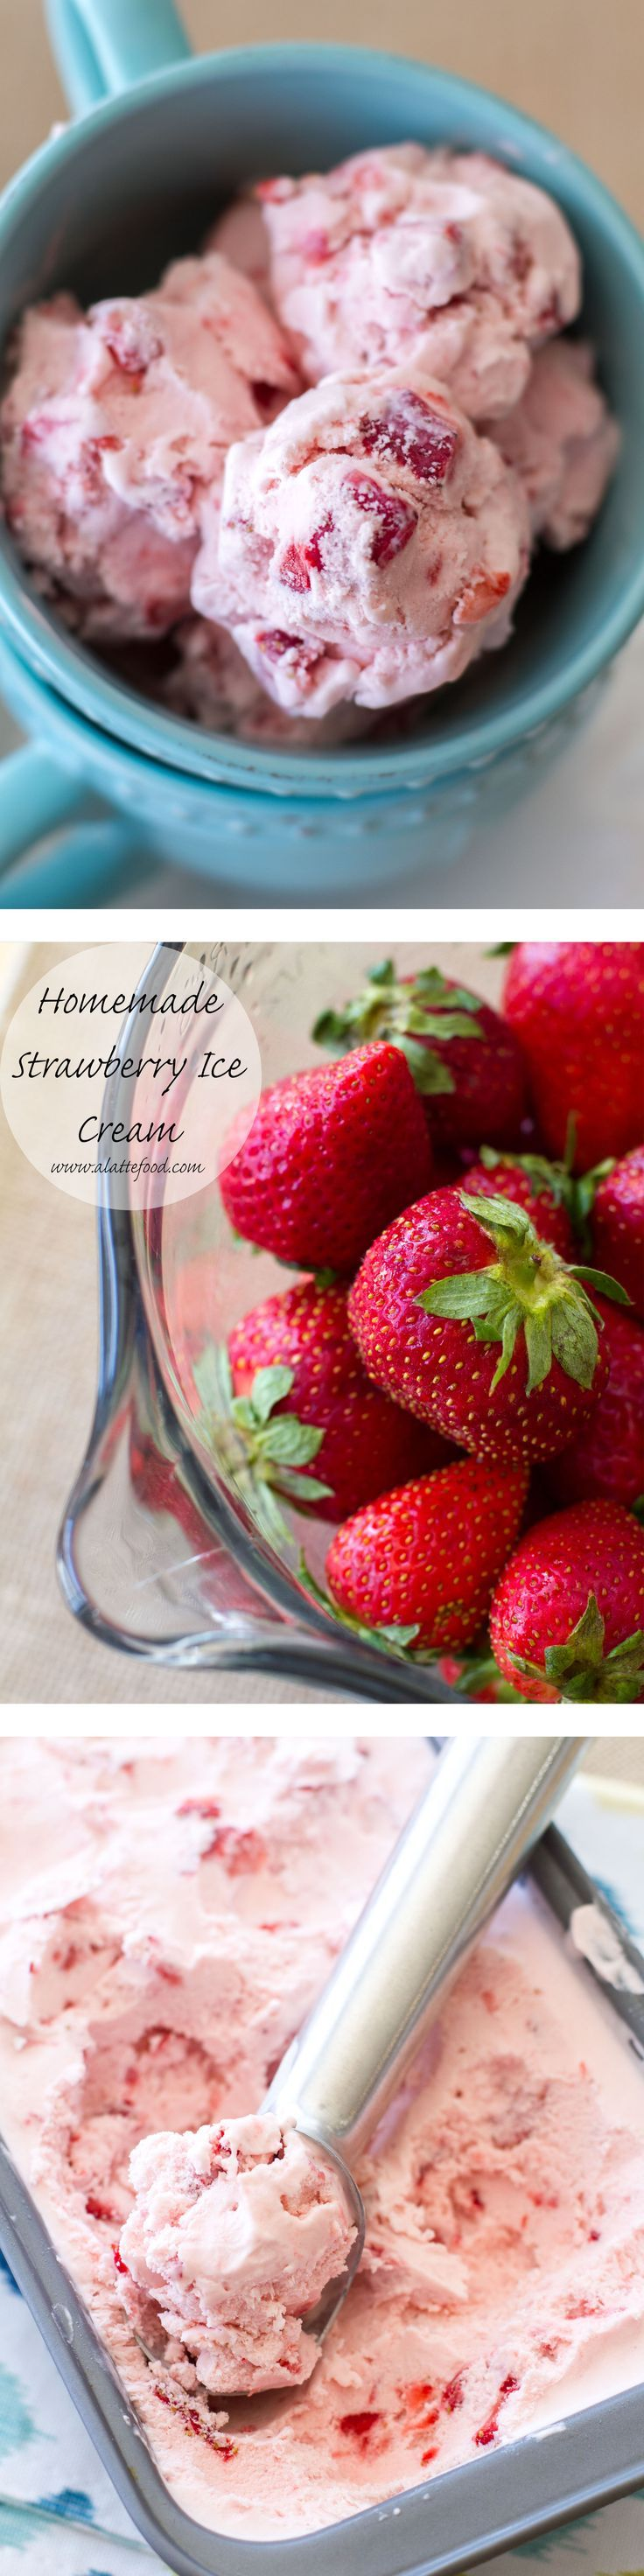 This homemade ice cream is creamy, dreamy, and made with fresh strawberries. It is so delicious! | www.alattefood.com (Strawberry Dessert Recipes)